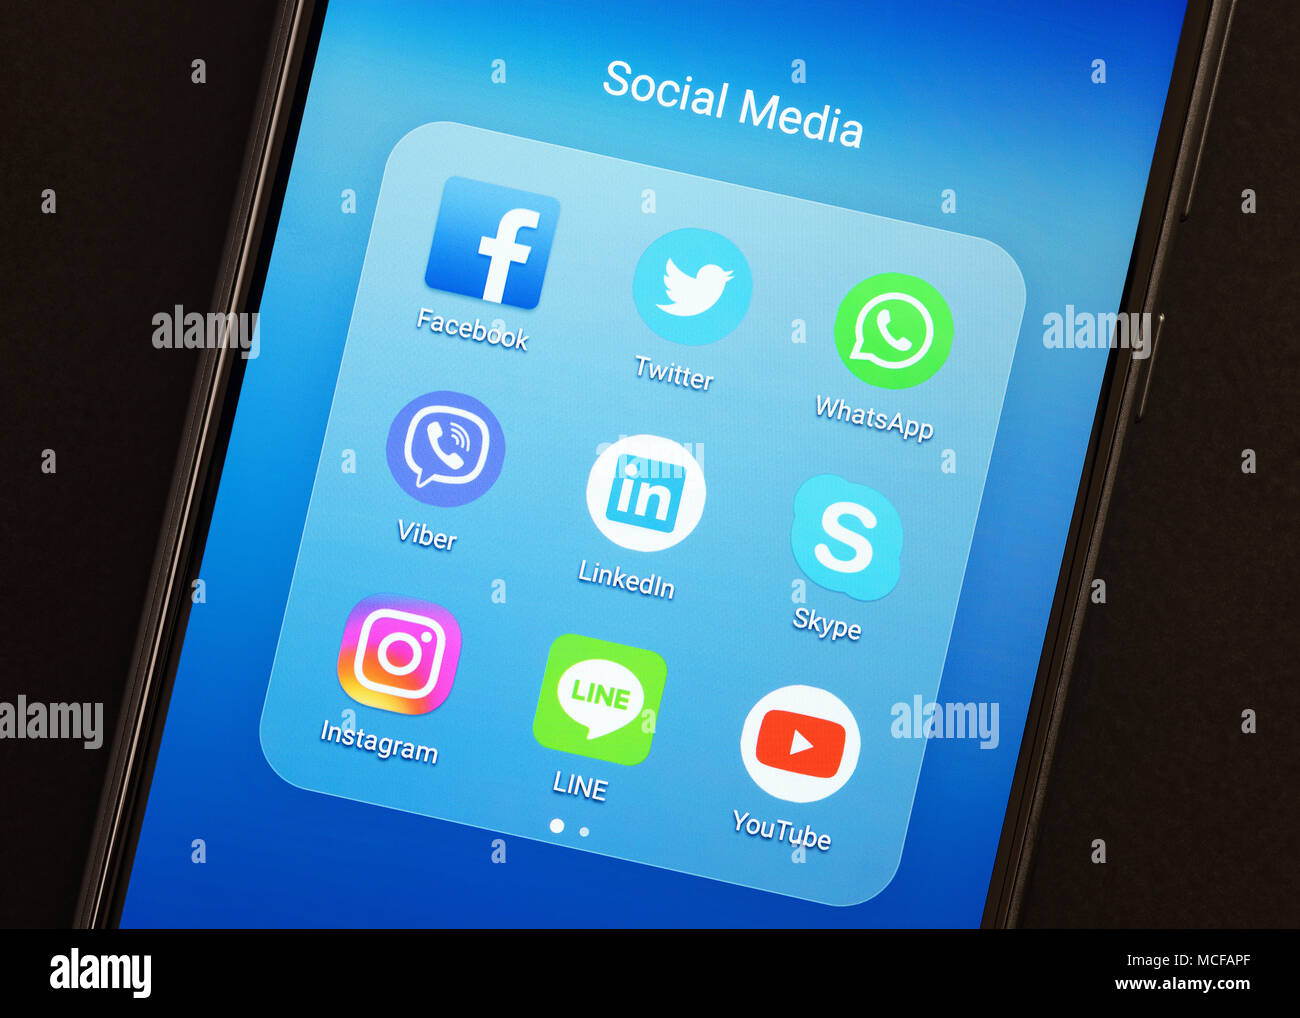 Social Media Apps on a Smartphone - Stock Image